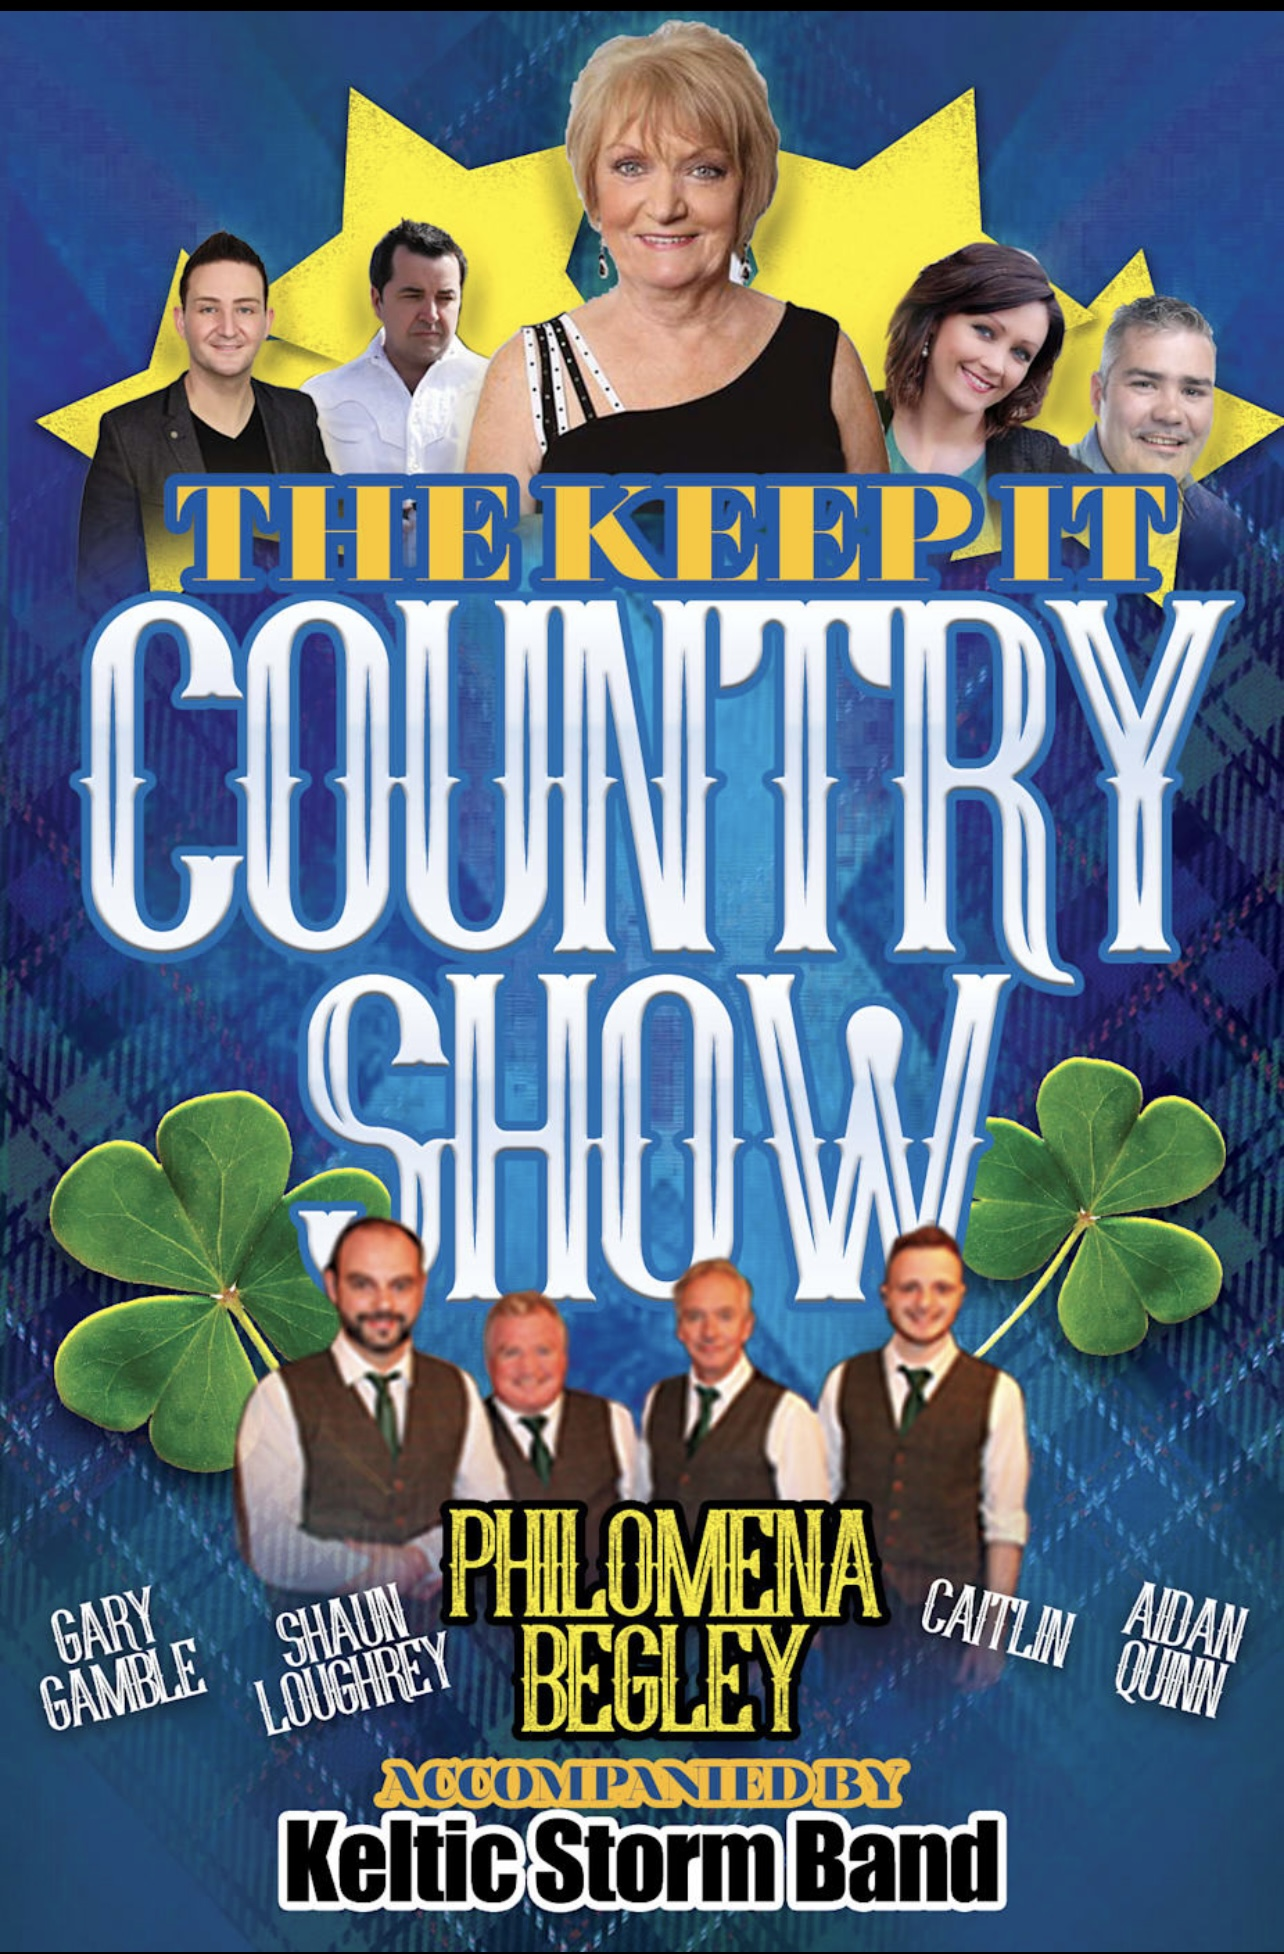 The Keep it Country Show